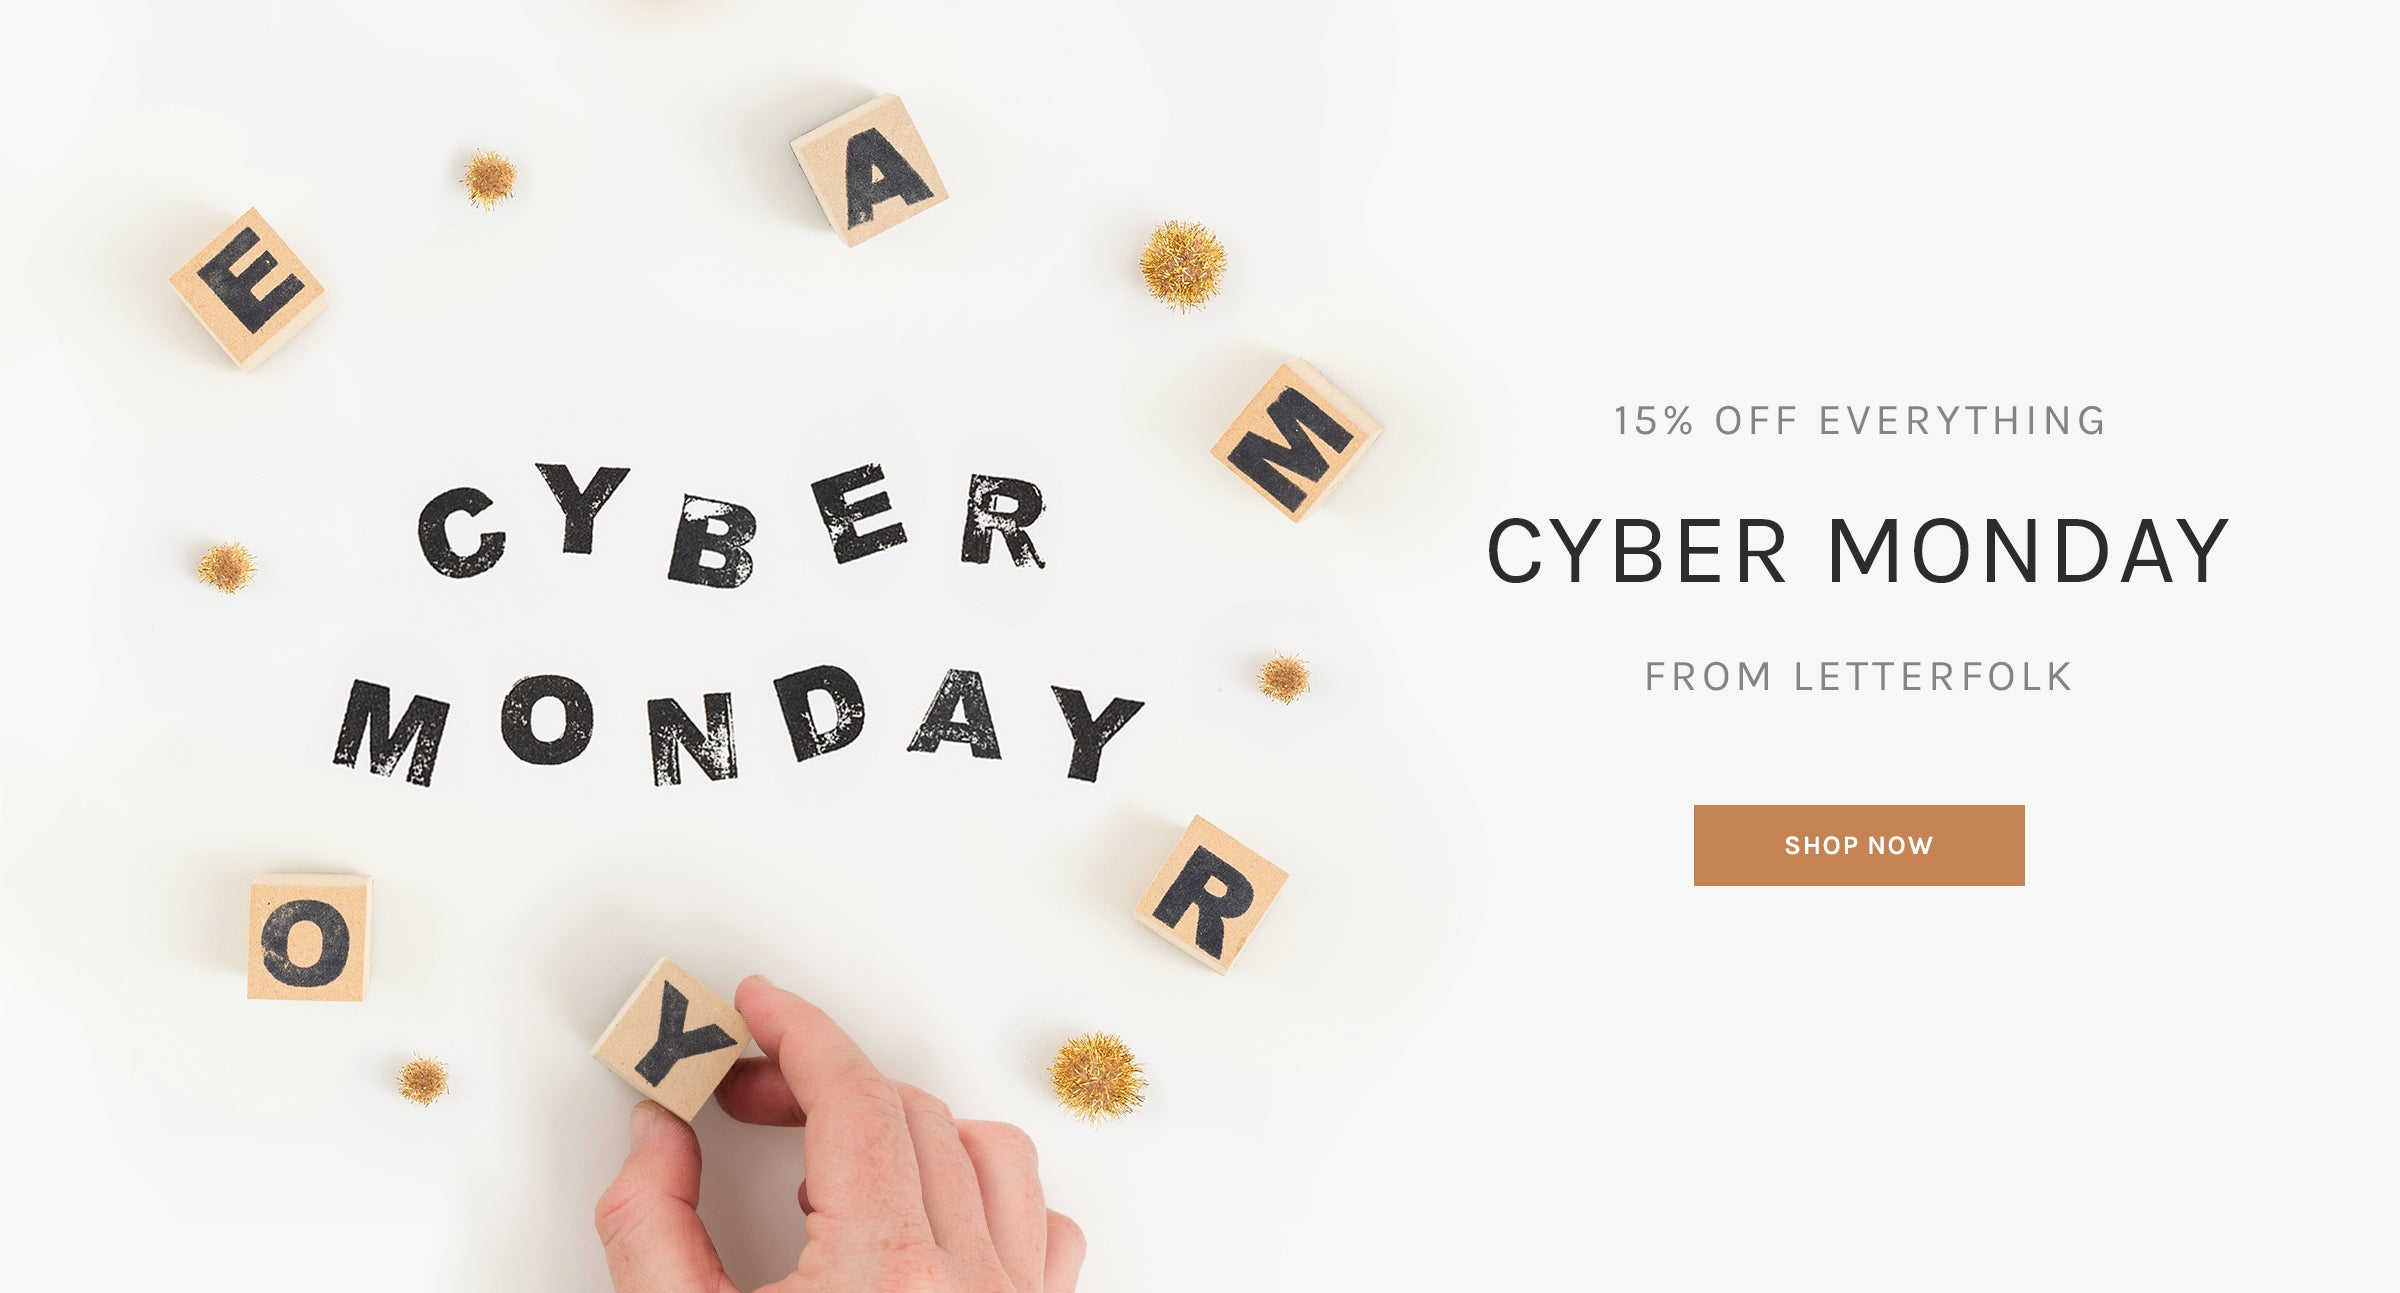 Cyber Monday 15% Off Everything